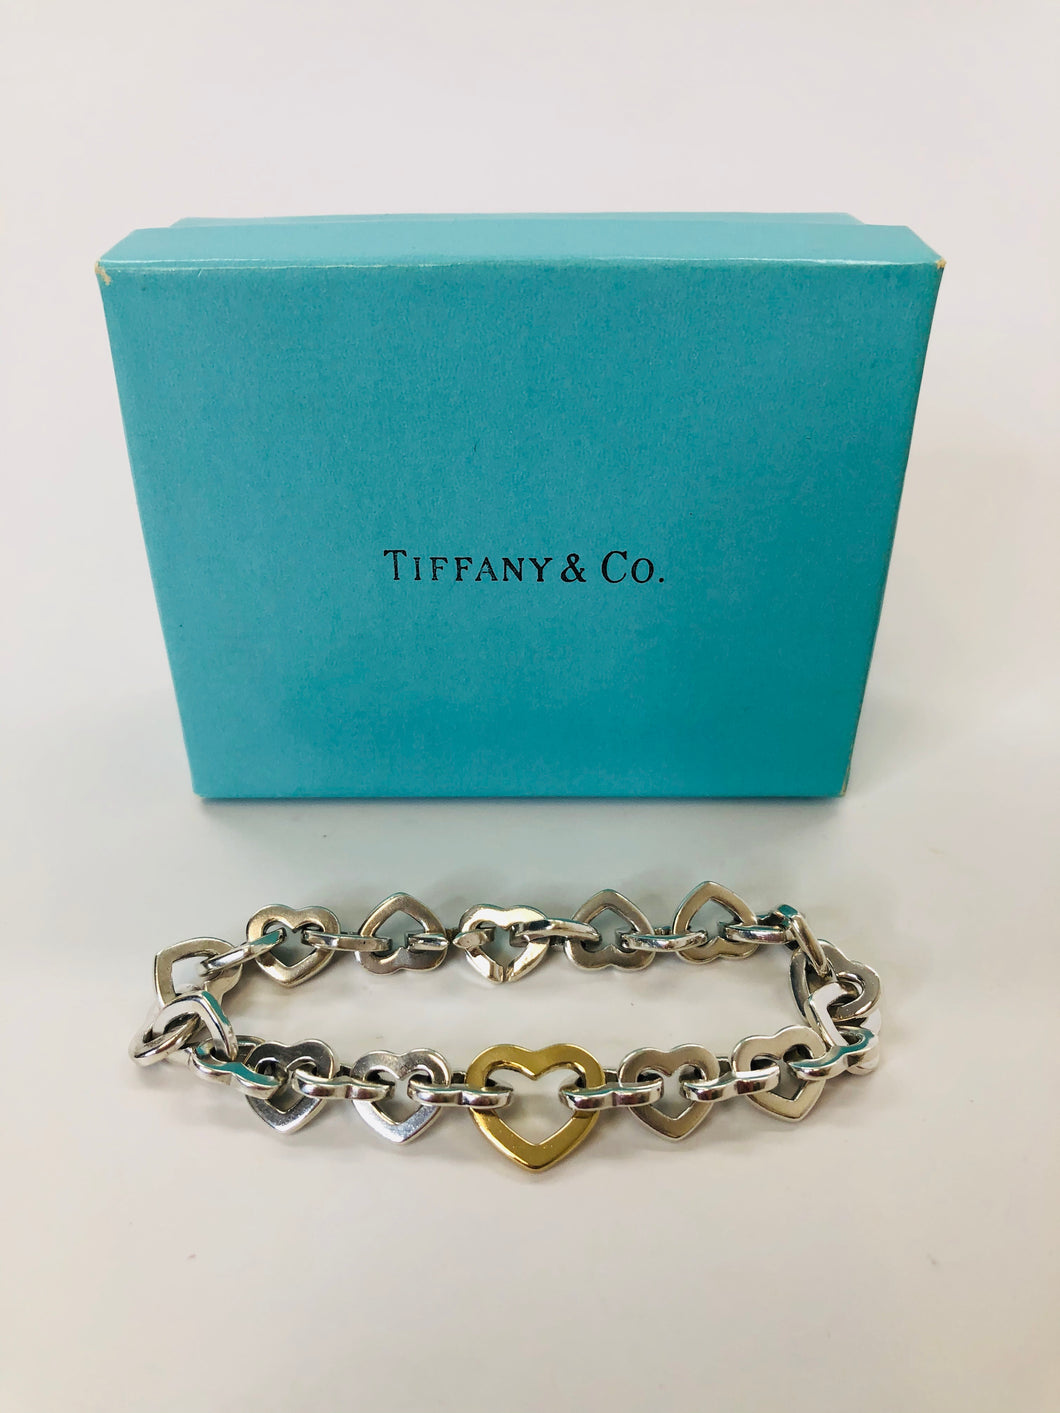 Tiffany & Co. Sterling Silver and 18K Heart Link Bracelet